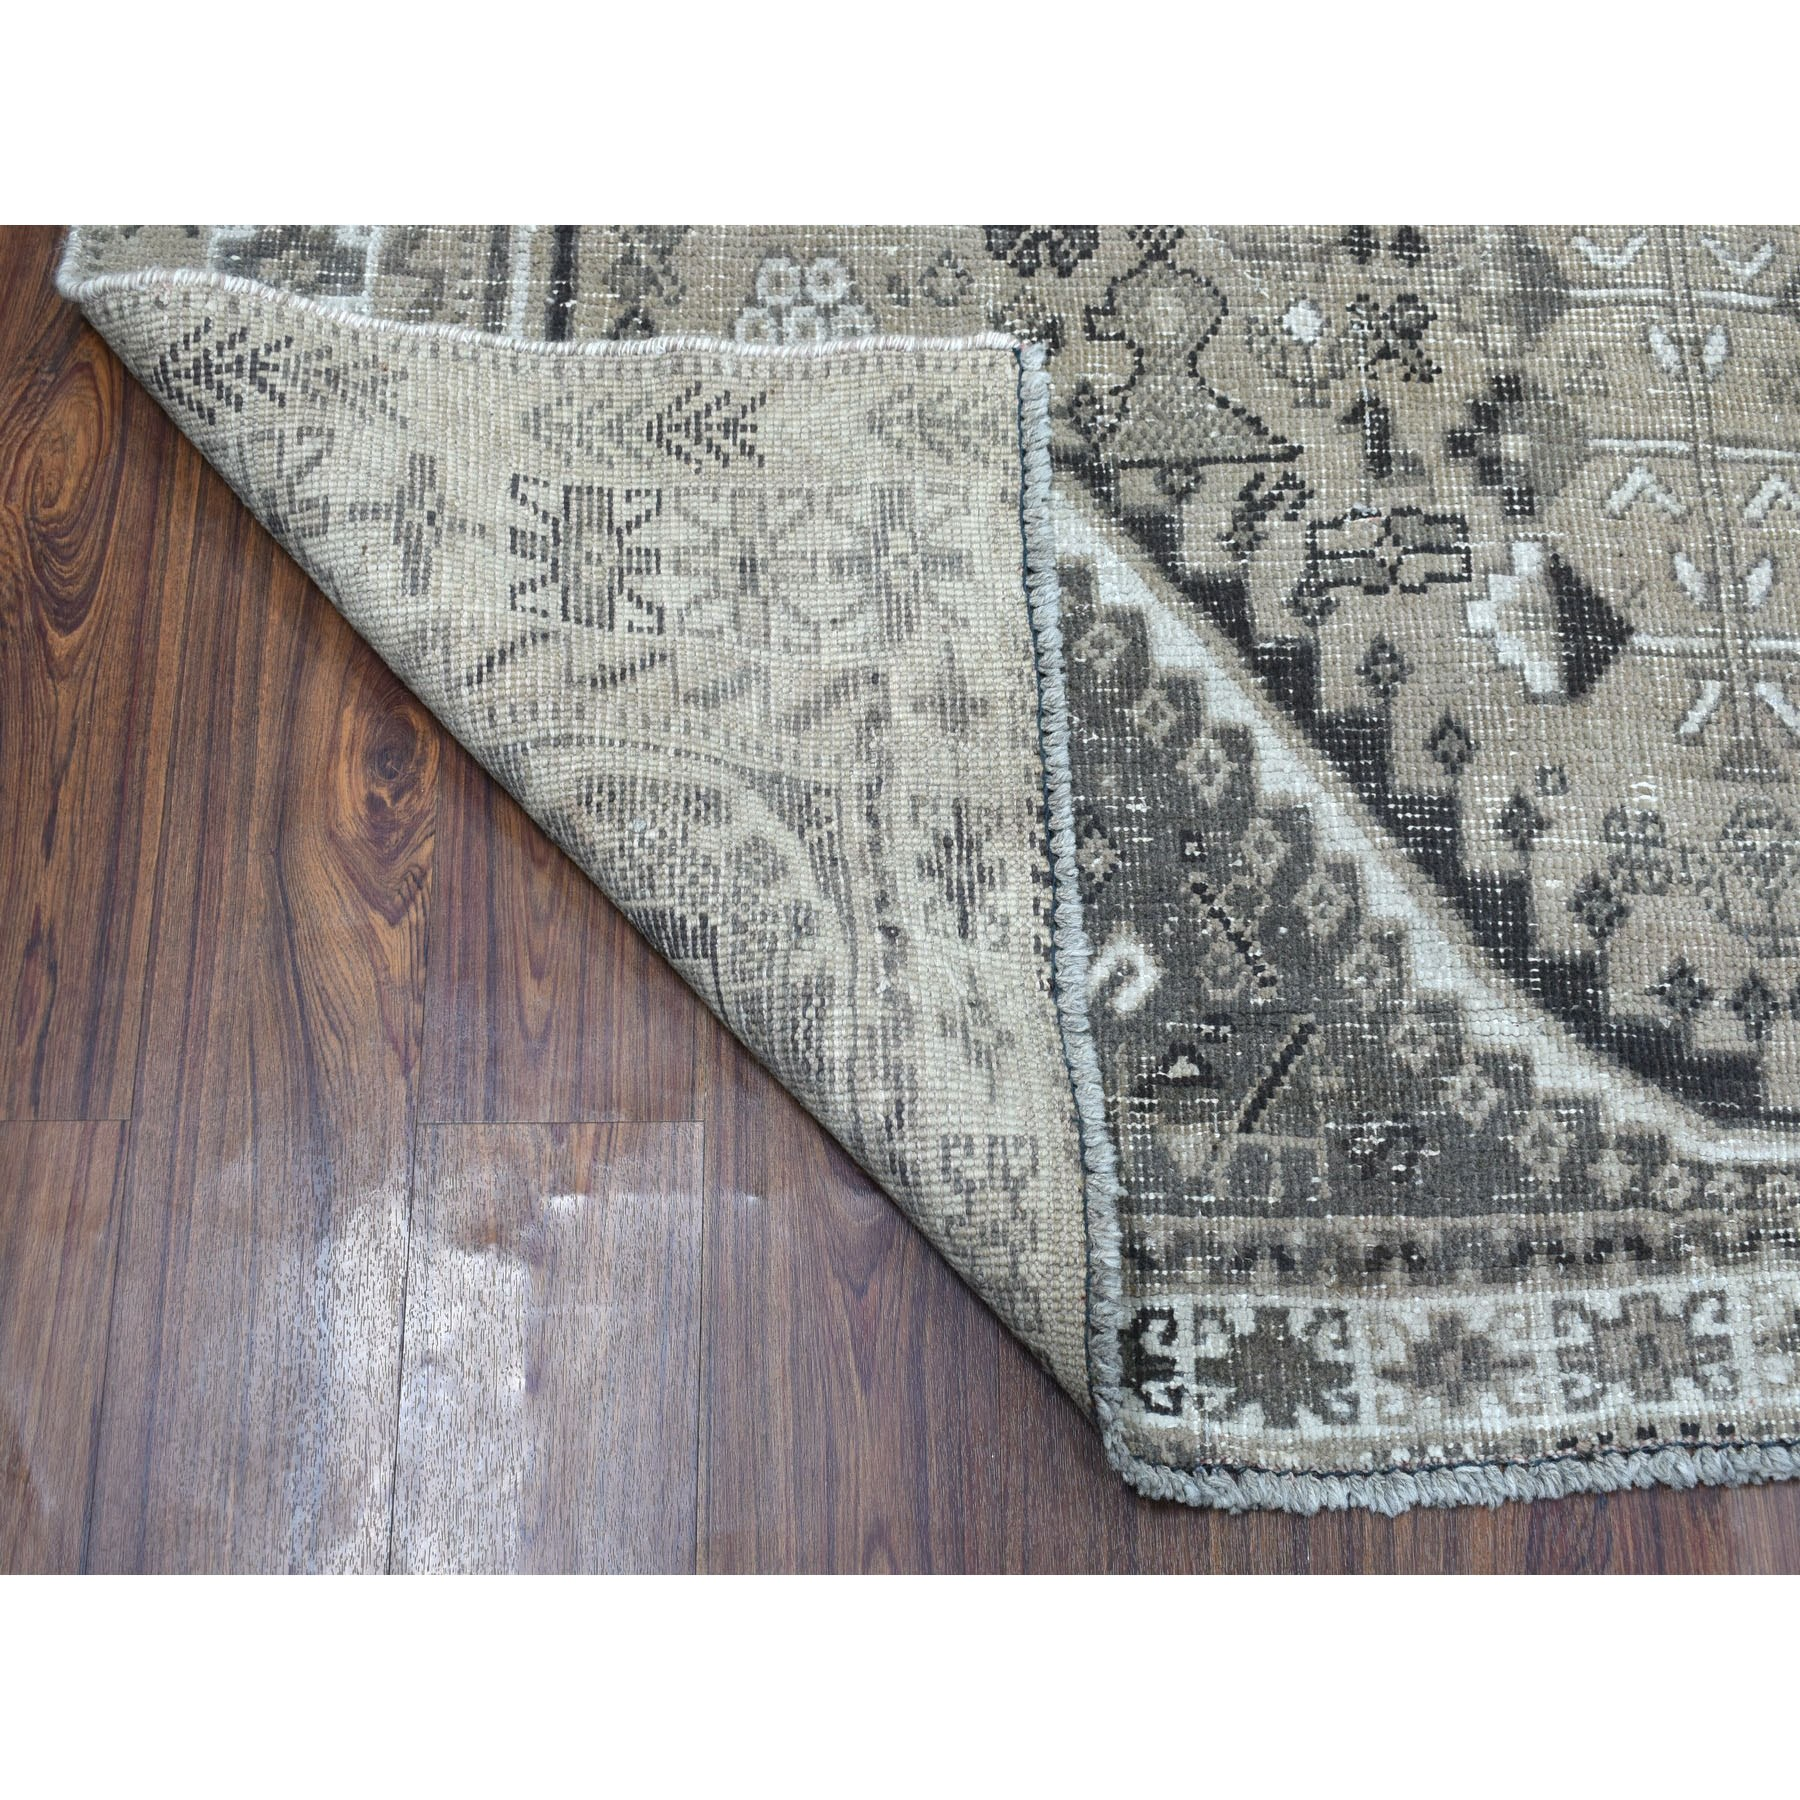 """6'4""""x9'1"""" Vintage And Worn Down Distressed Colors Persian Qashqai Hand Knotted Bohemian Rug"""